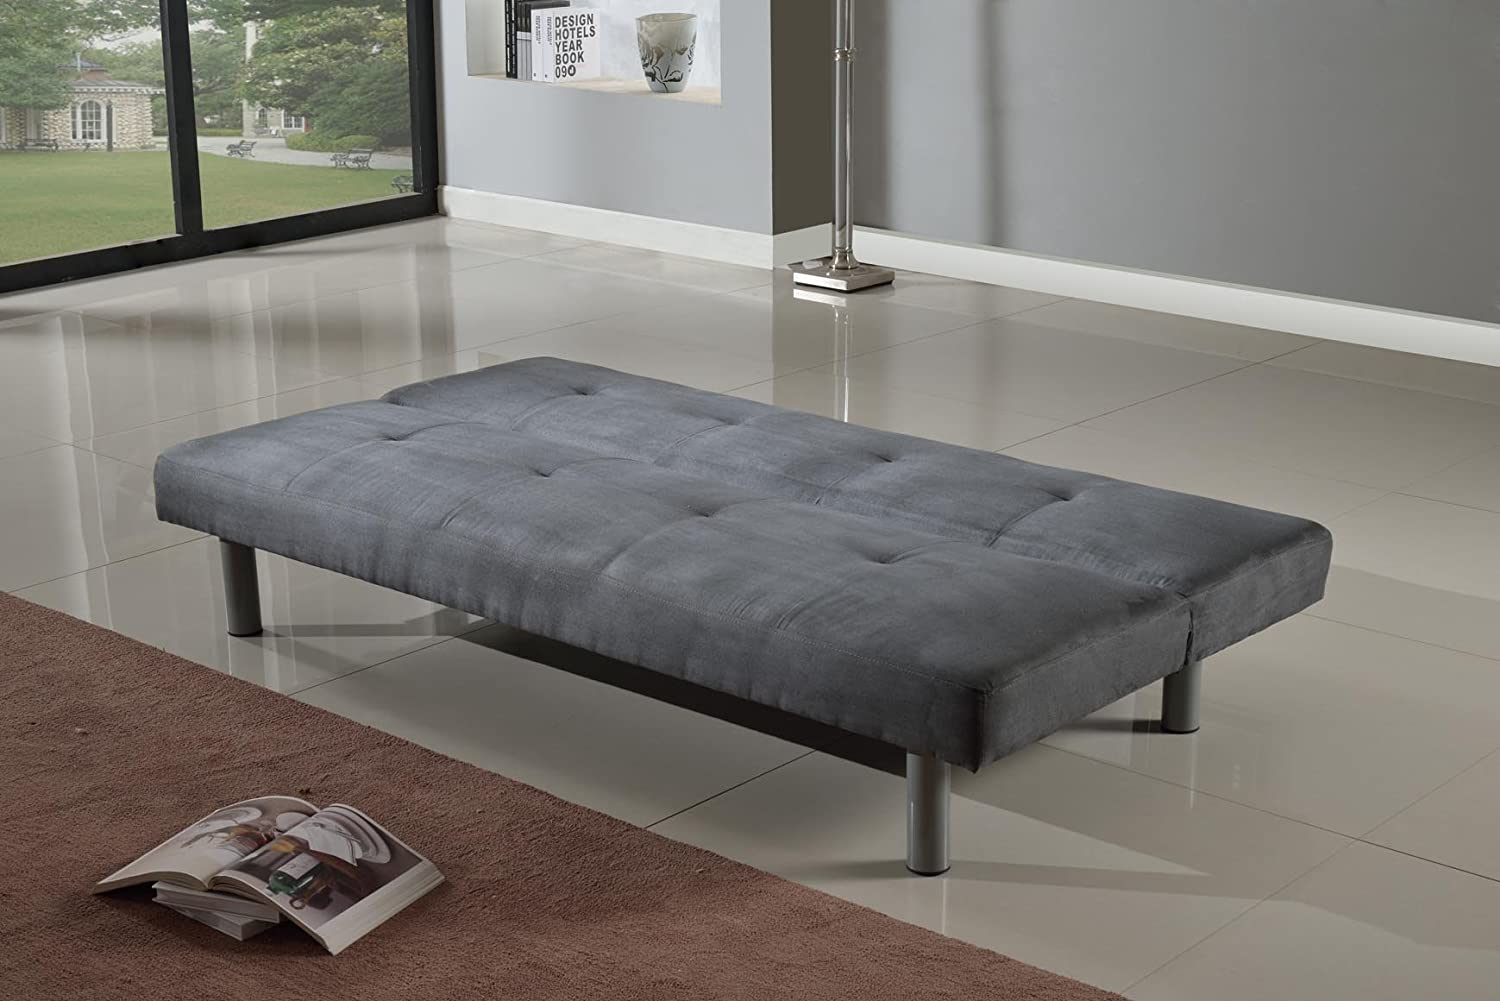 Comfy Living Faux Suede 3 Seater Quality Sofa Bed   Click Clac Fabric  Sofabed In GREY: Amazon.co.uk: Kitchen U0026 Home